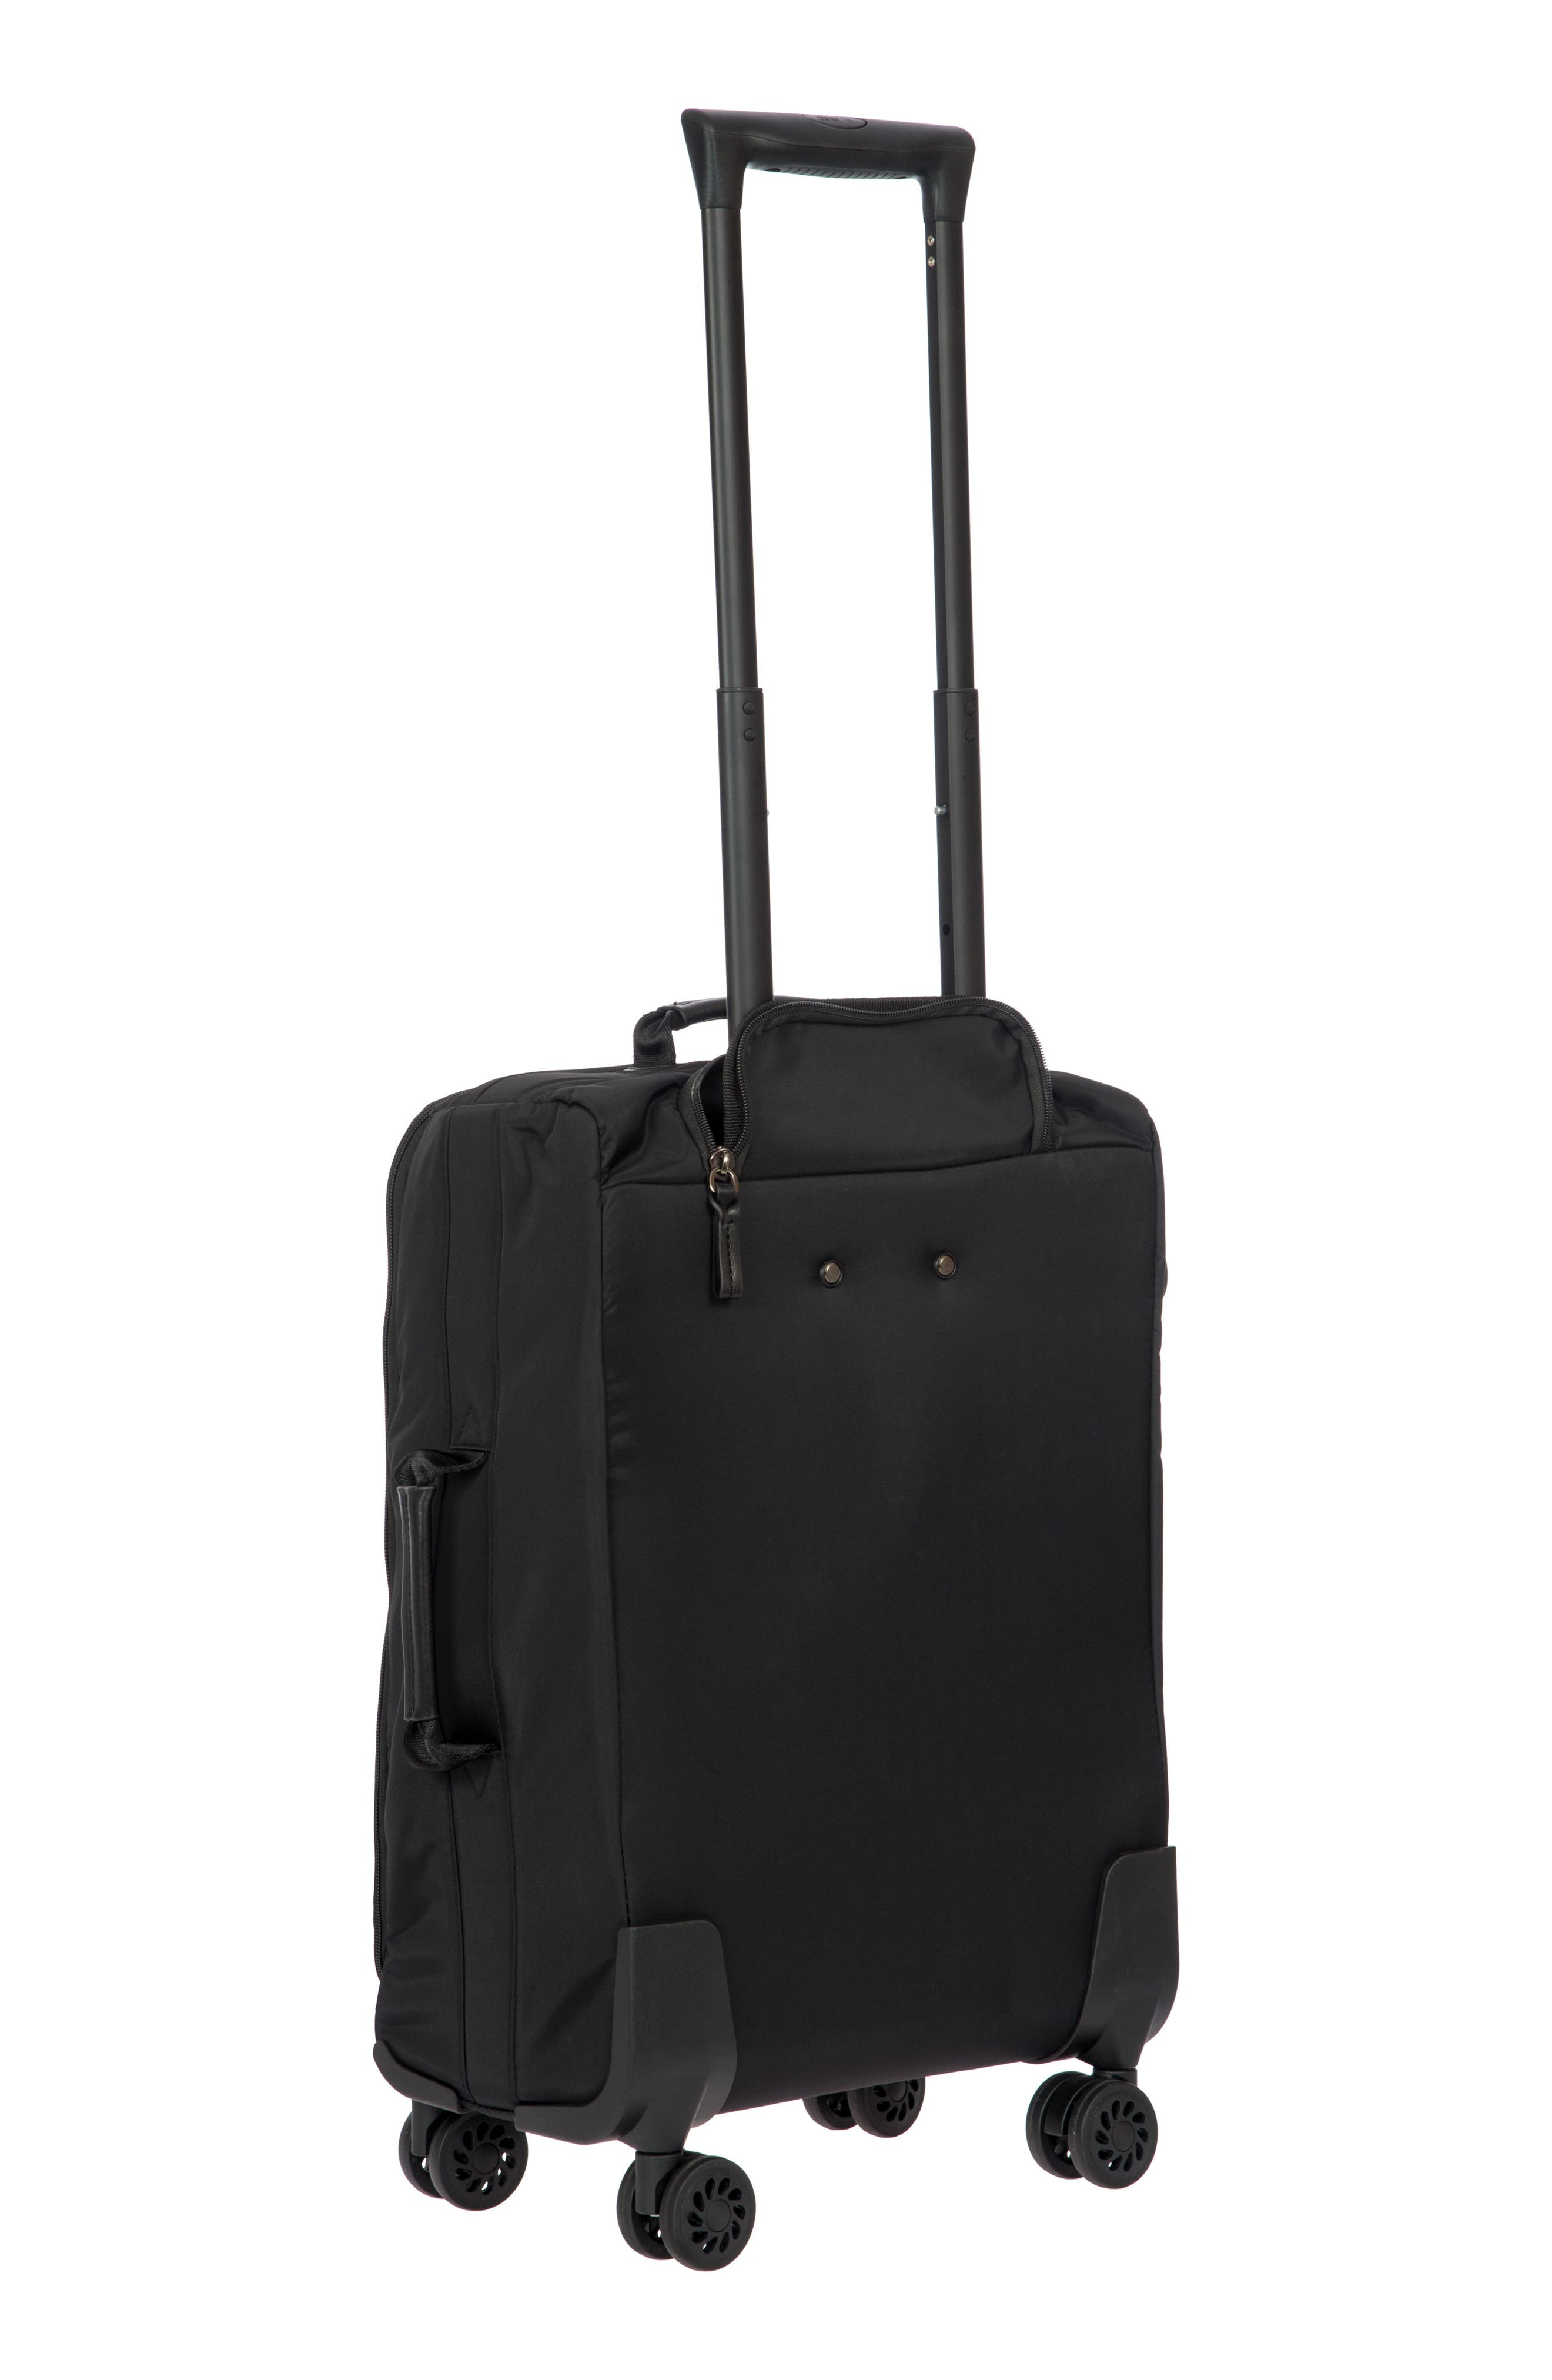 X-Bag 21-Inch Spinner Carry-On,                             Alternate thumbnail 4, color,                             BLACK/ BLACK